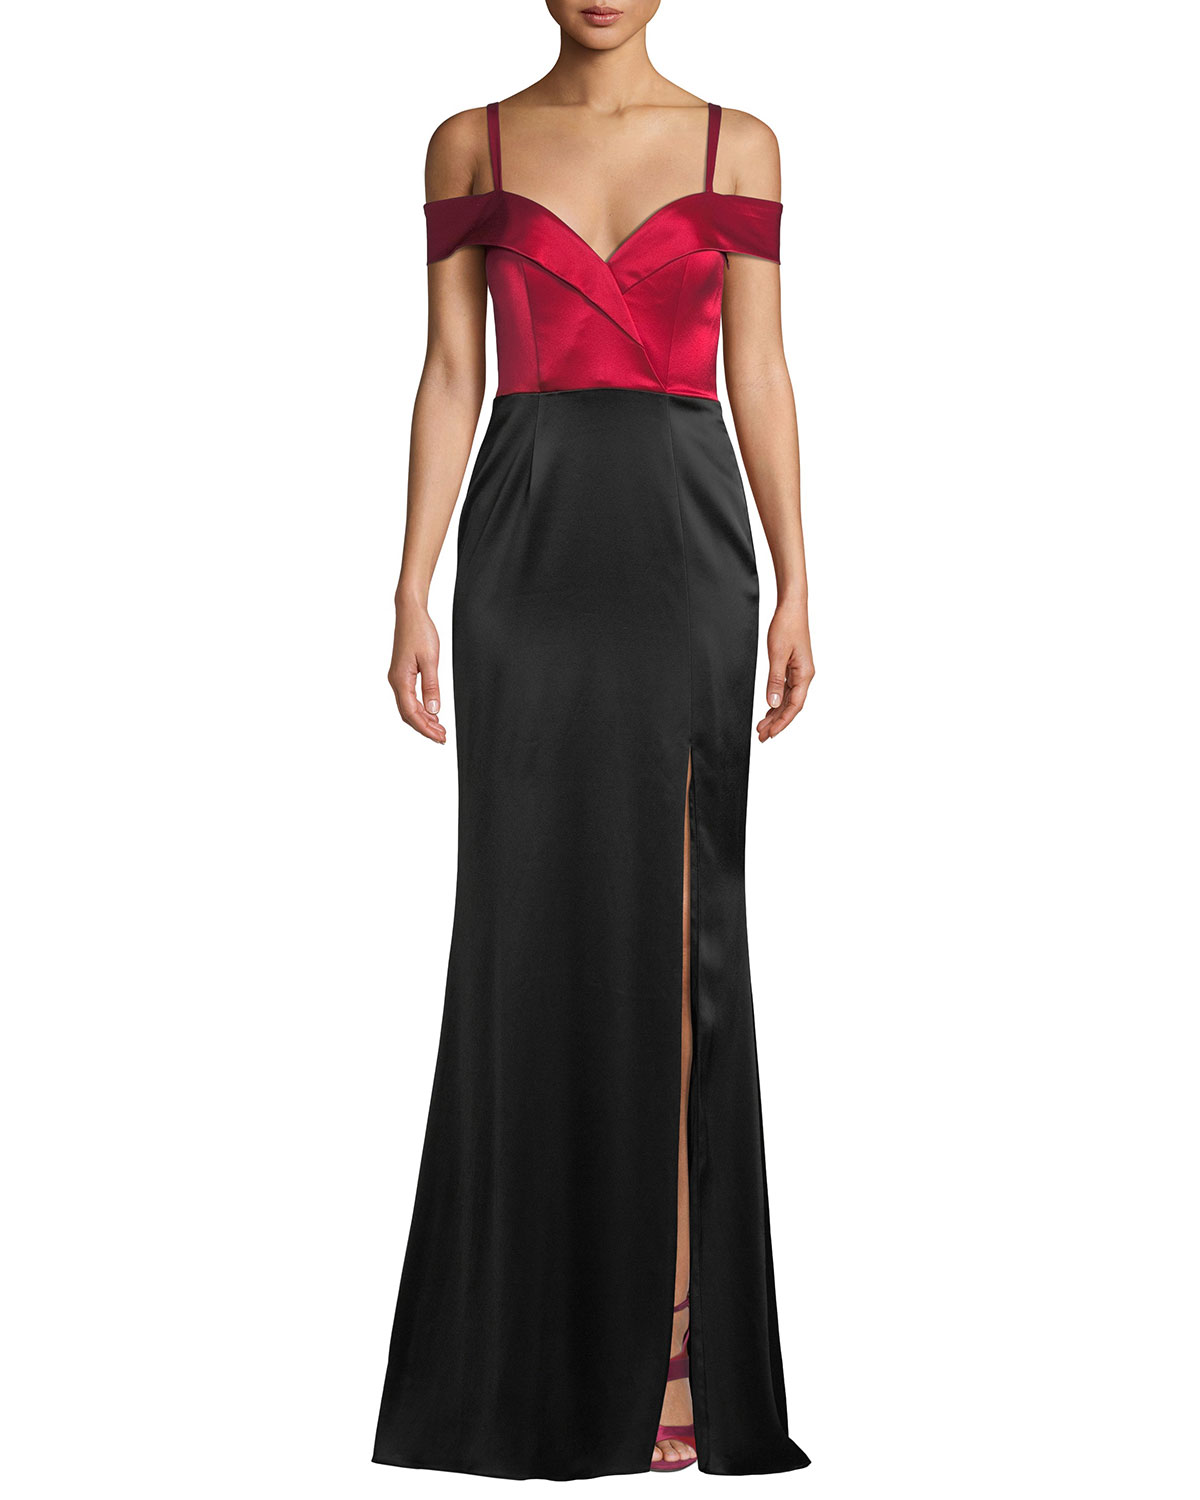 Catherine Deane Liza Off-the-Shoulder Colorblock Gown in Satin ...